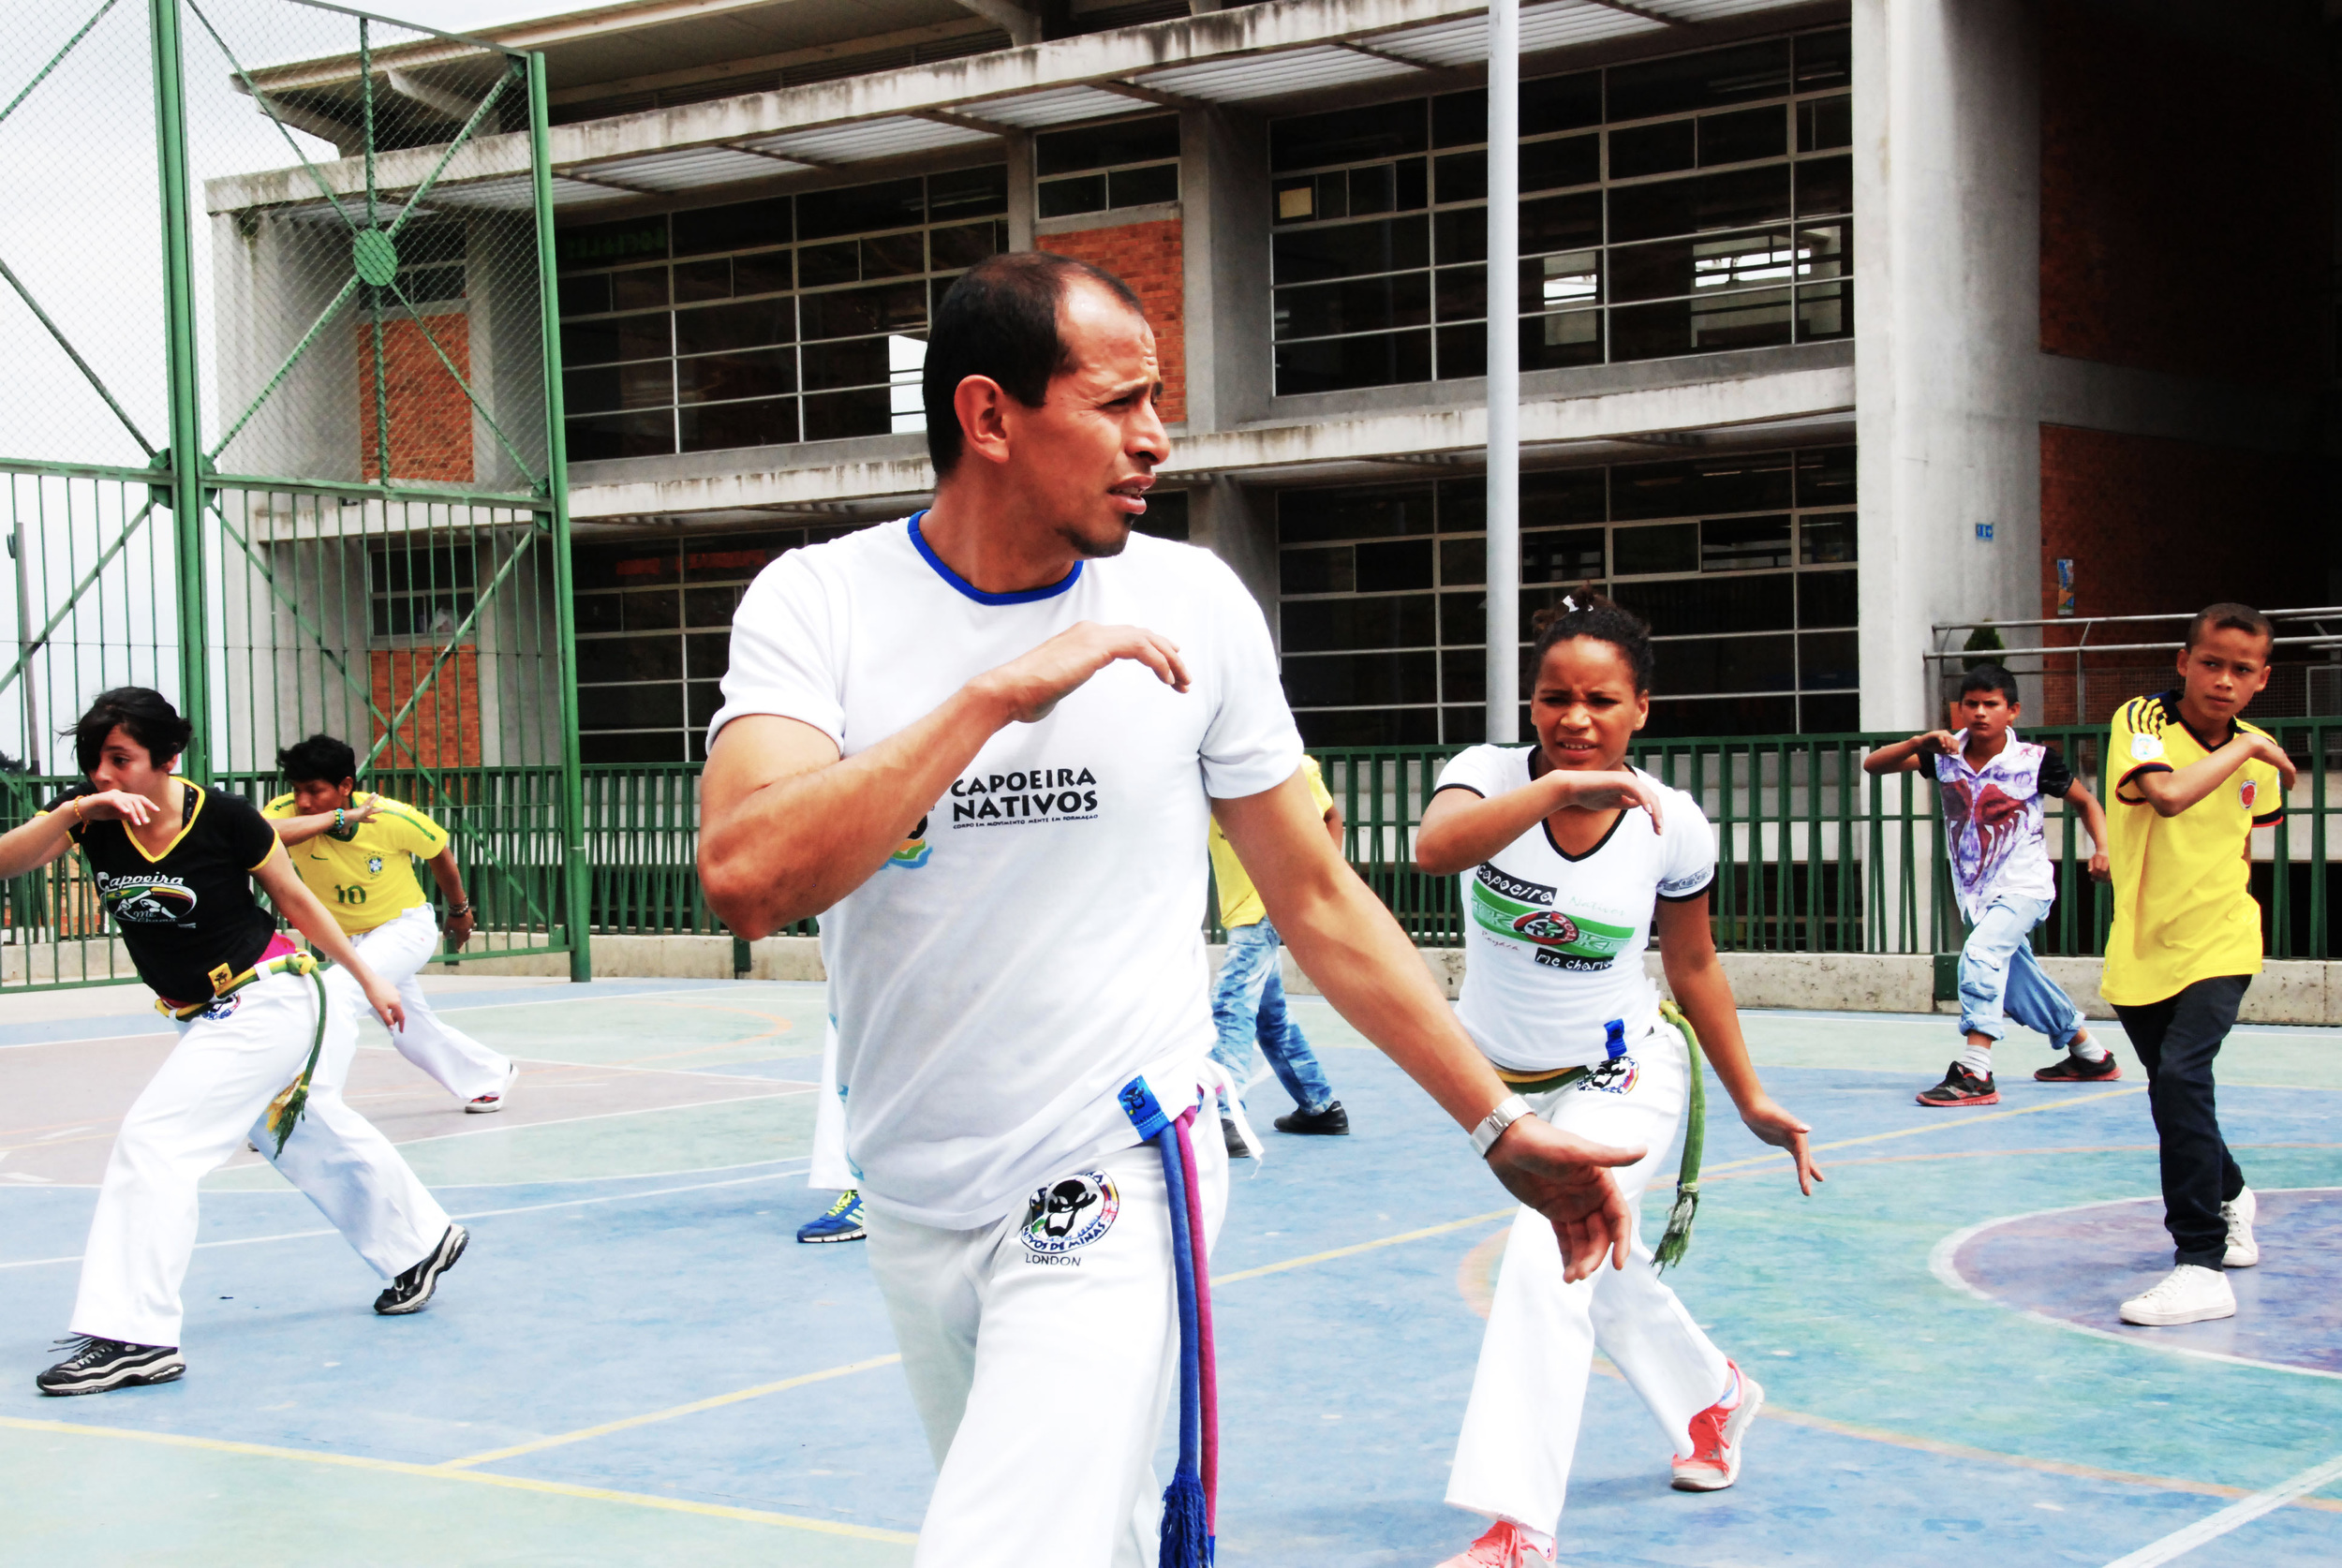 Class of capoeira in the neighborhood of Ciudad Bolivar